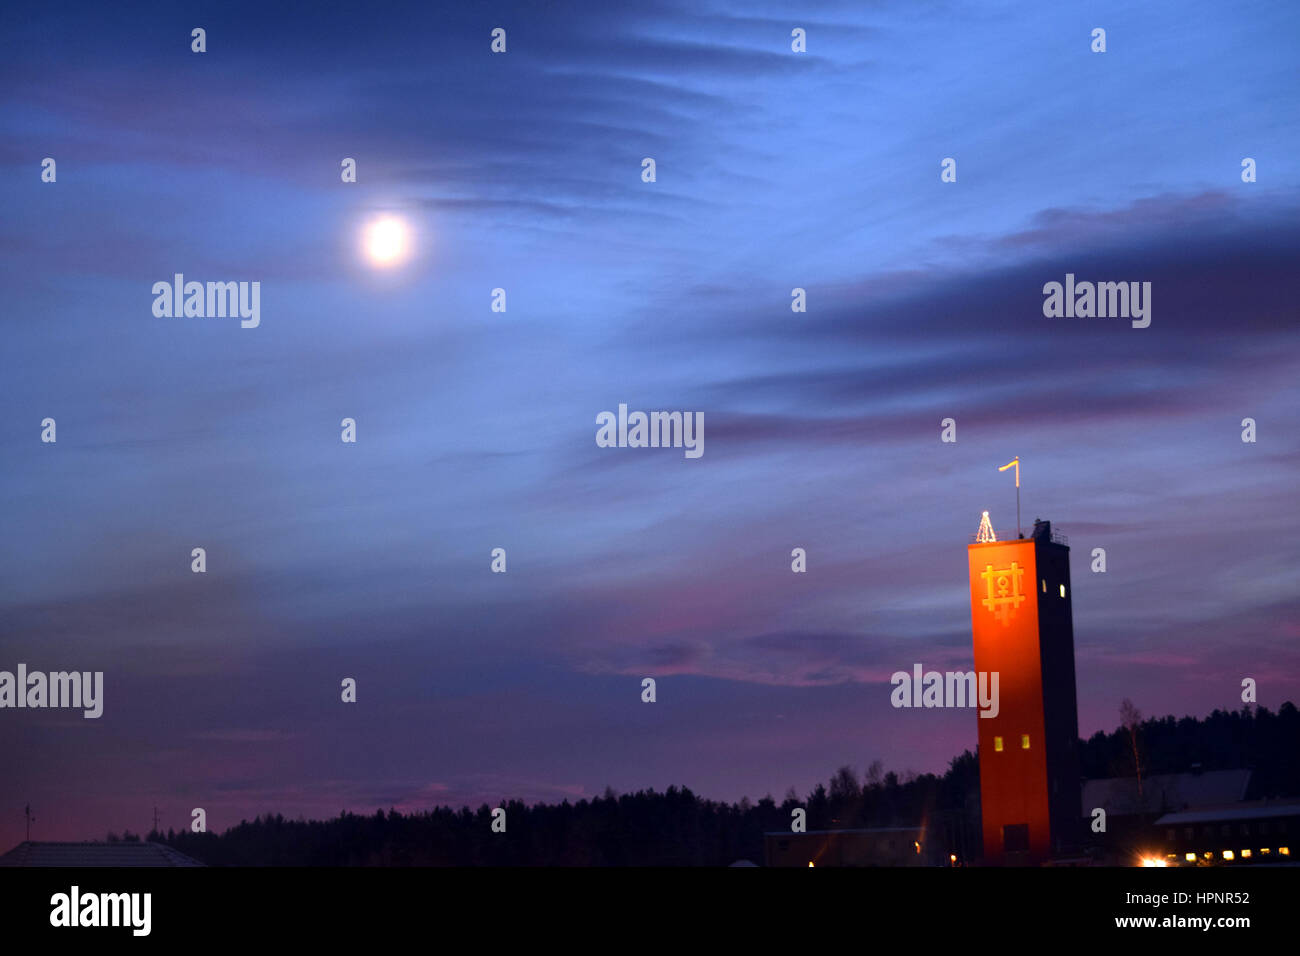 A christmas tree on the tower in the moonshine. - Stock Image